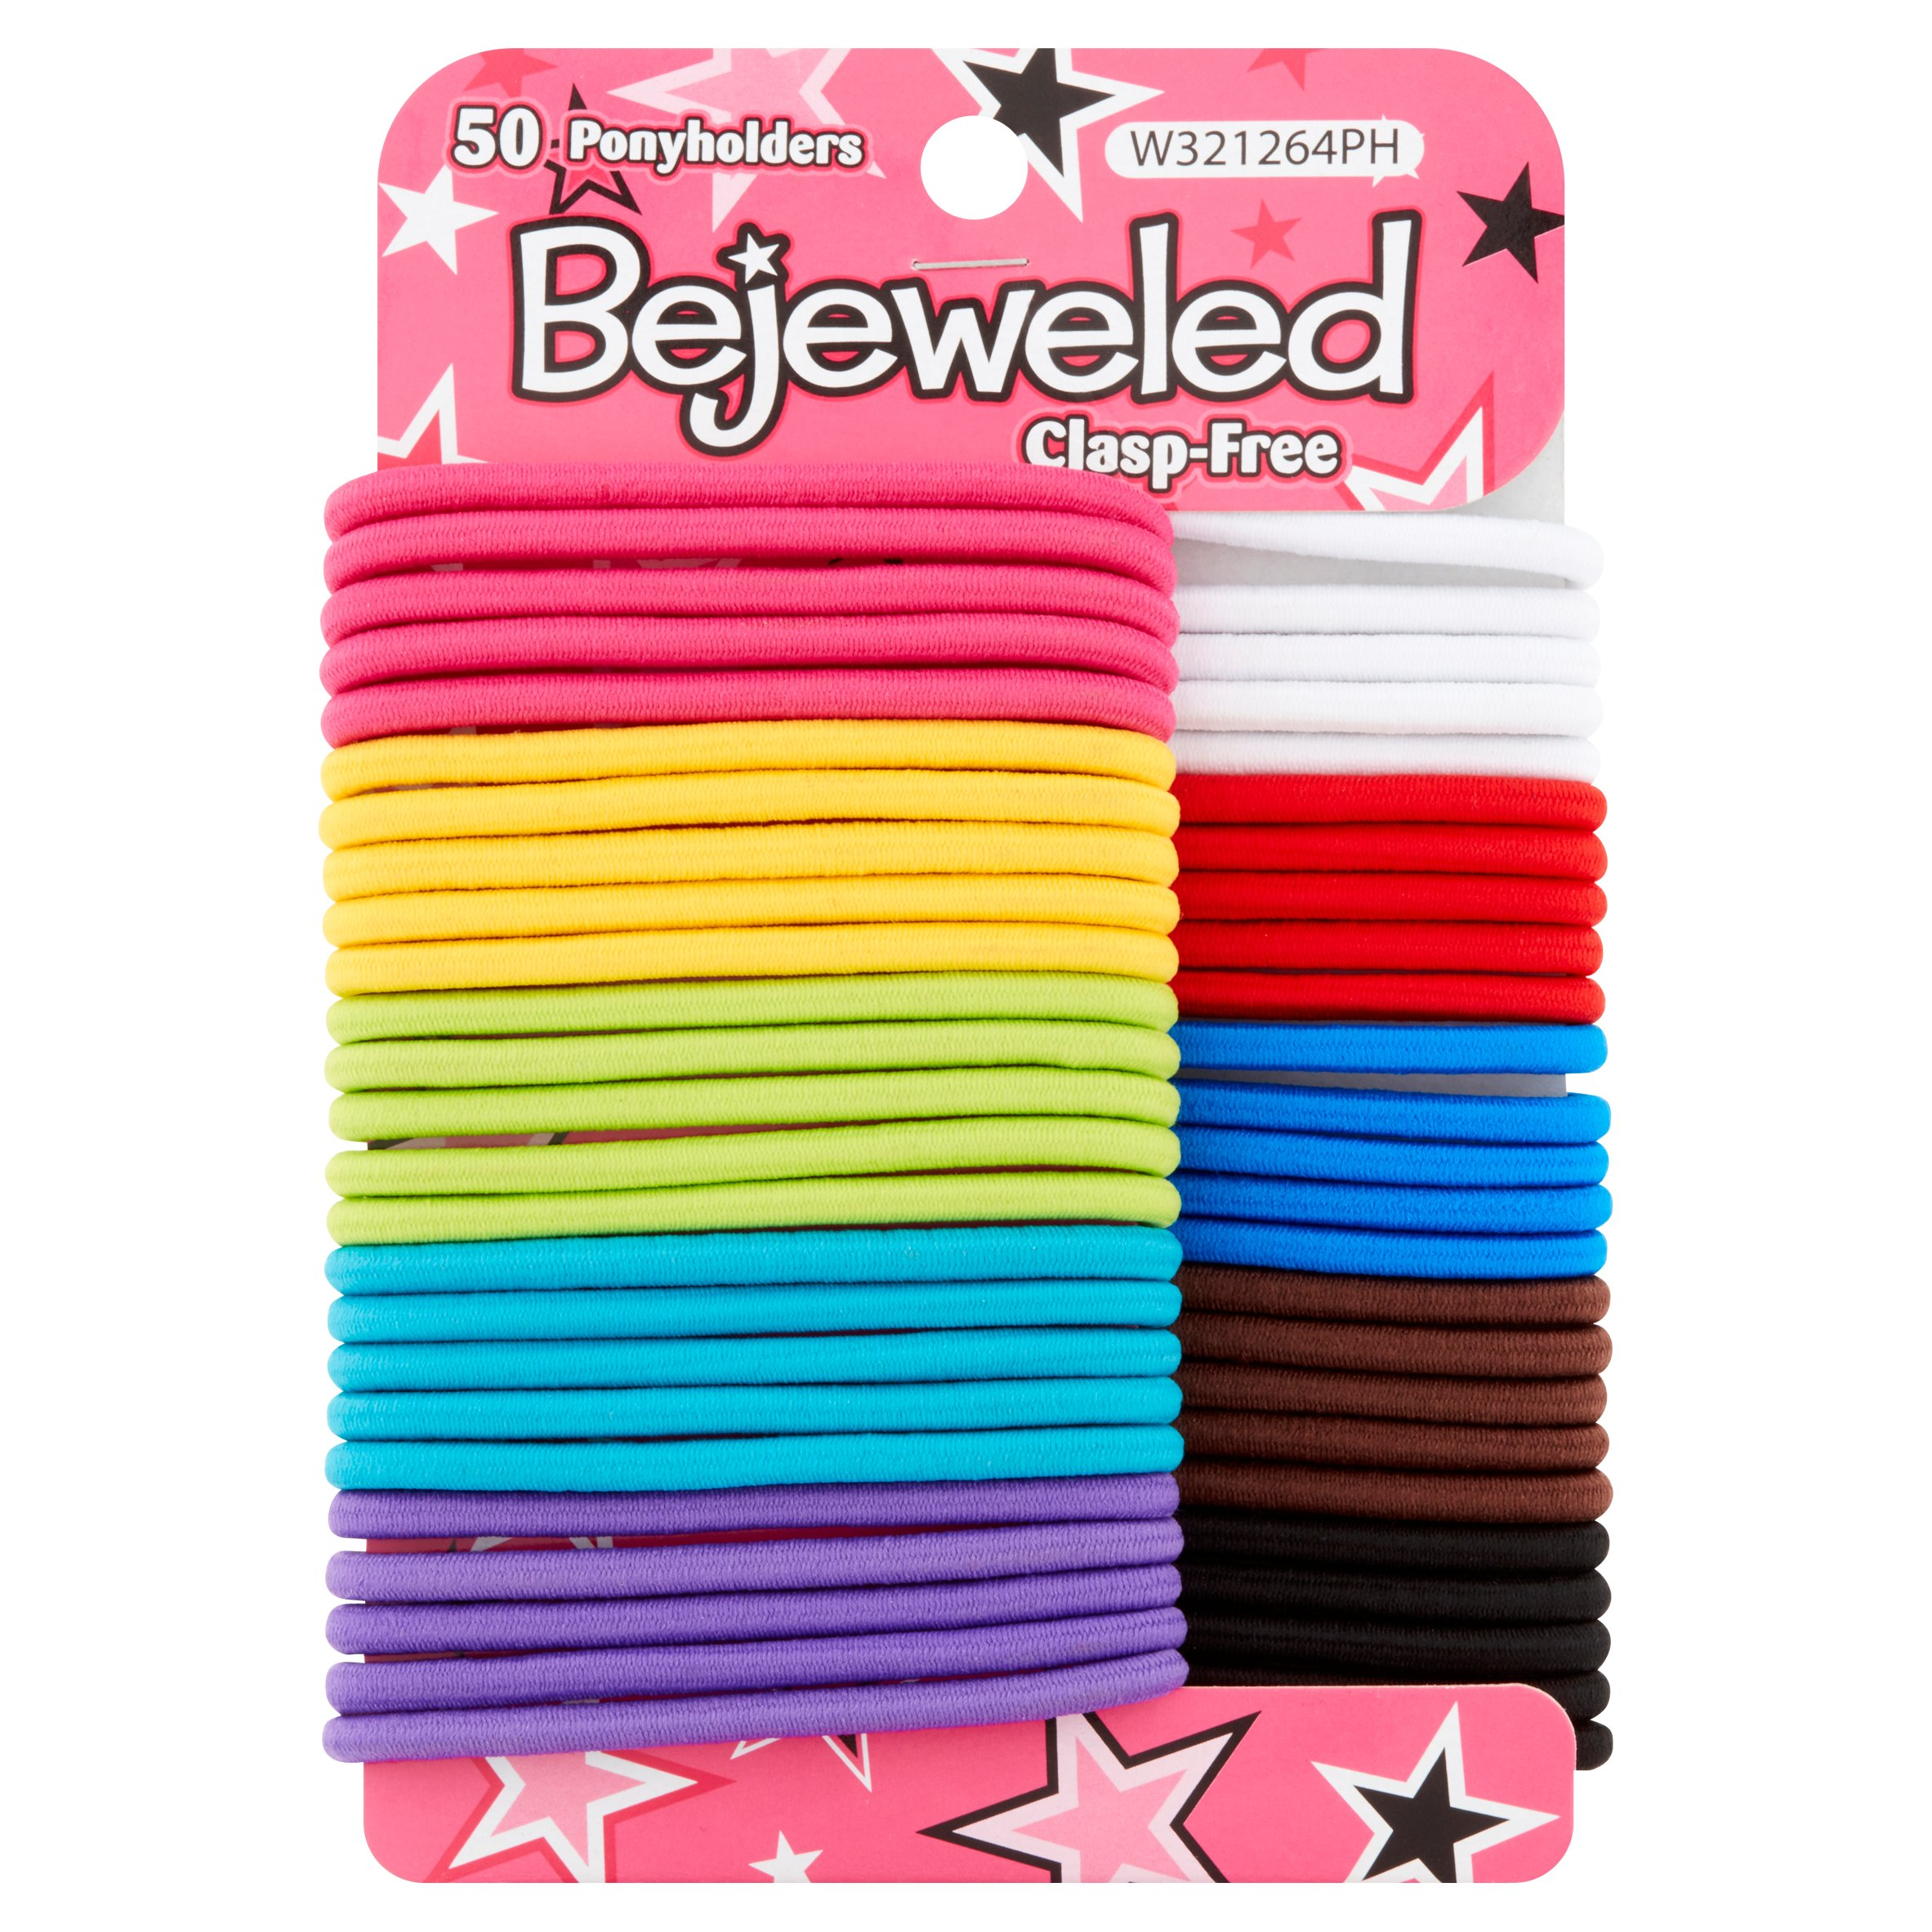 (2 Pack) Bejeweled Clasp-Free Ponyholders, 50 count